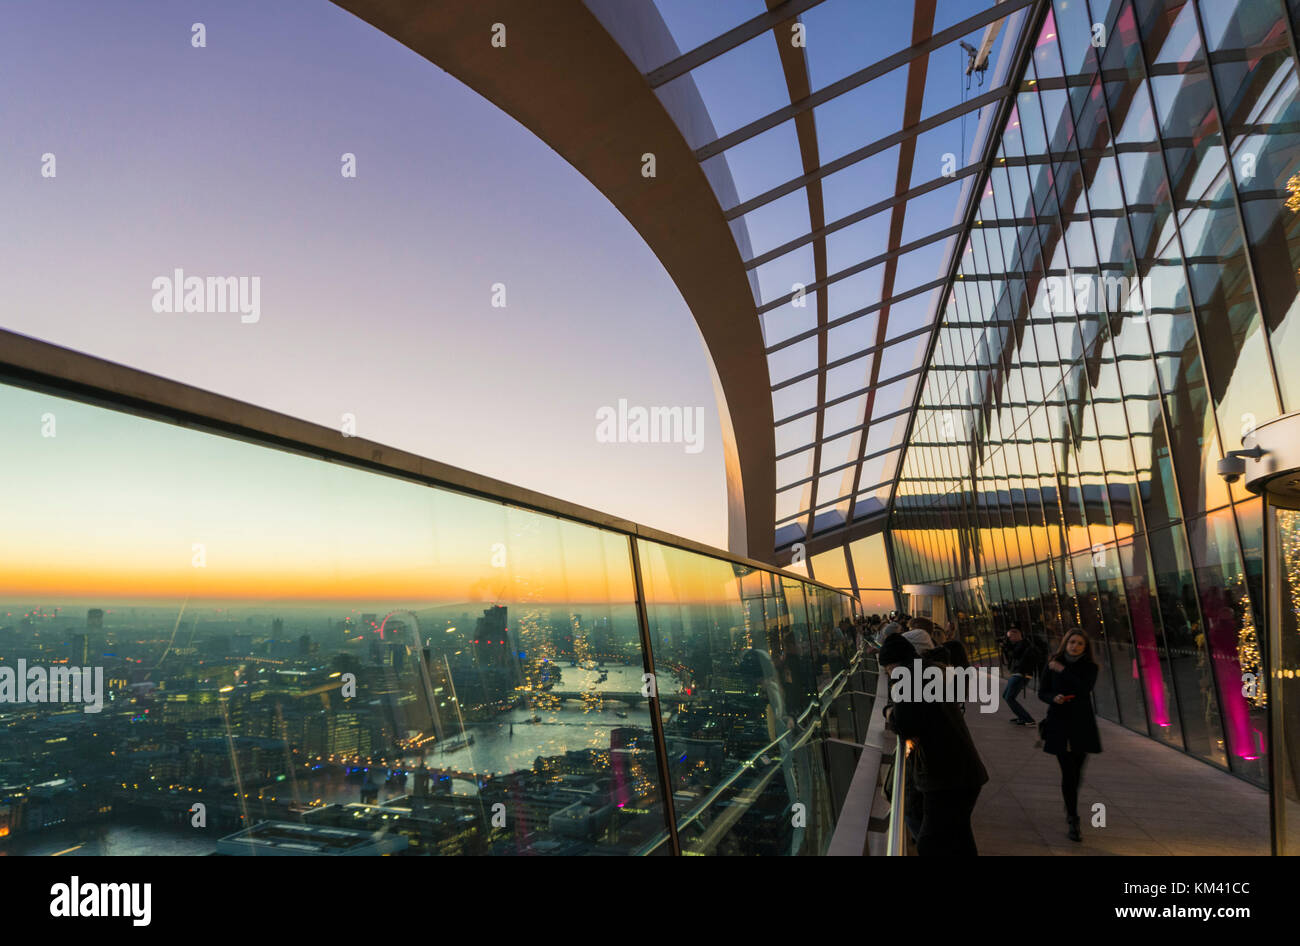 Inglaterra Inglaterra Londres City of London skyline atardecer el walkie talkie construir rascacielos o 20 Fenchurch Imagen De Stock